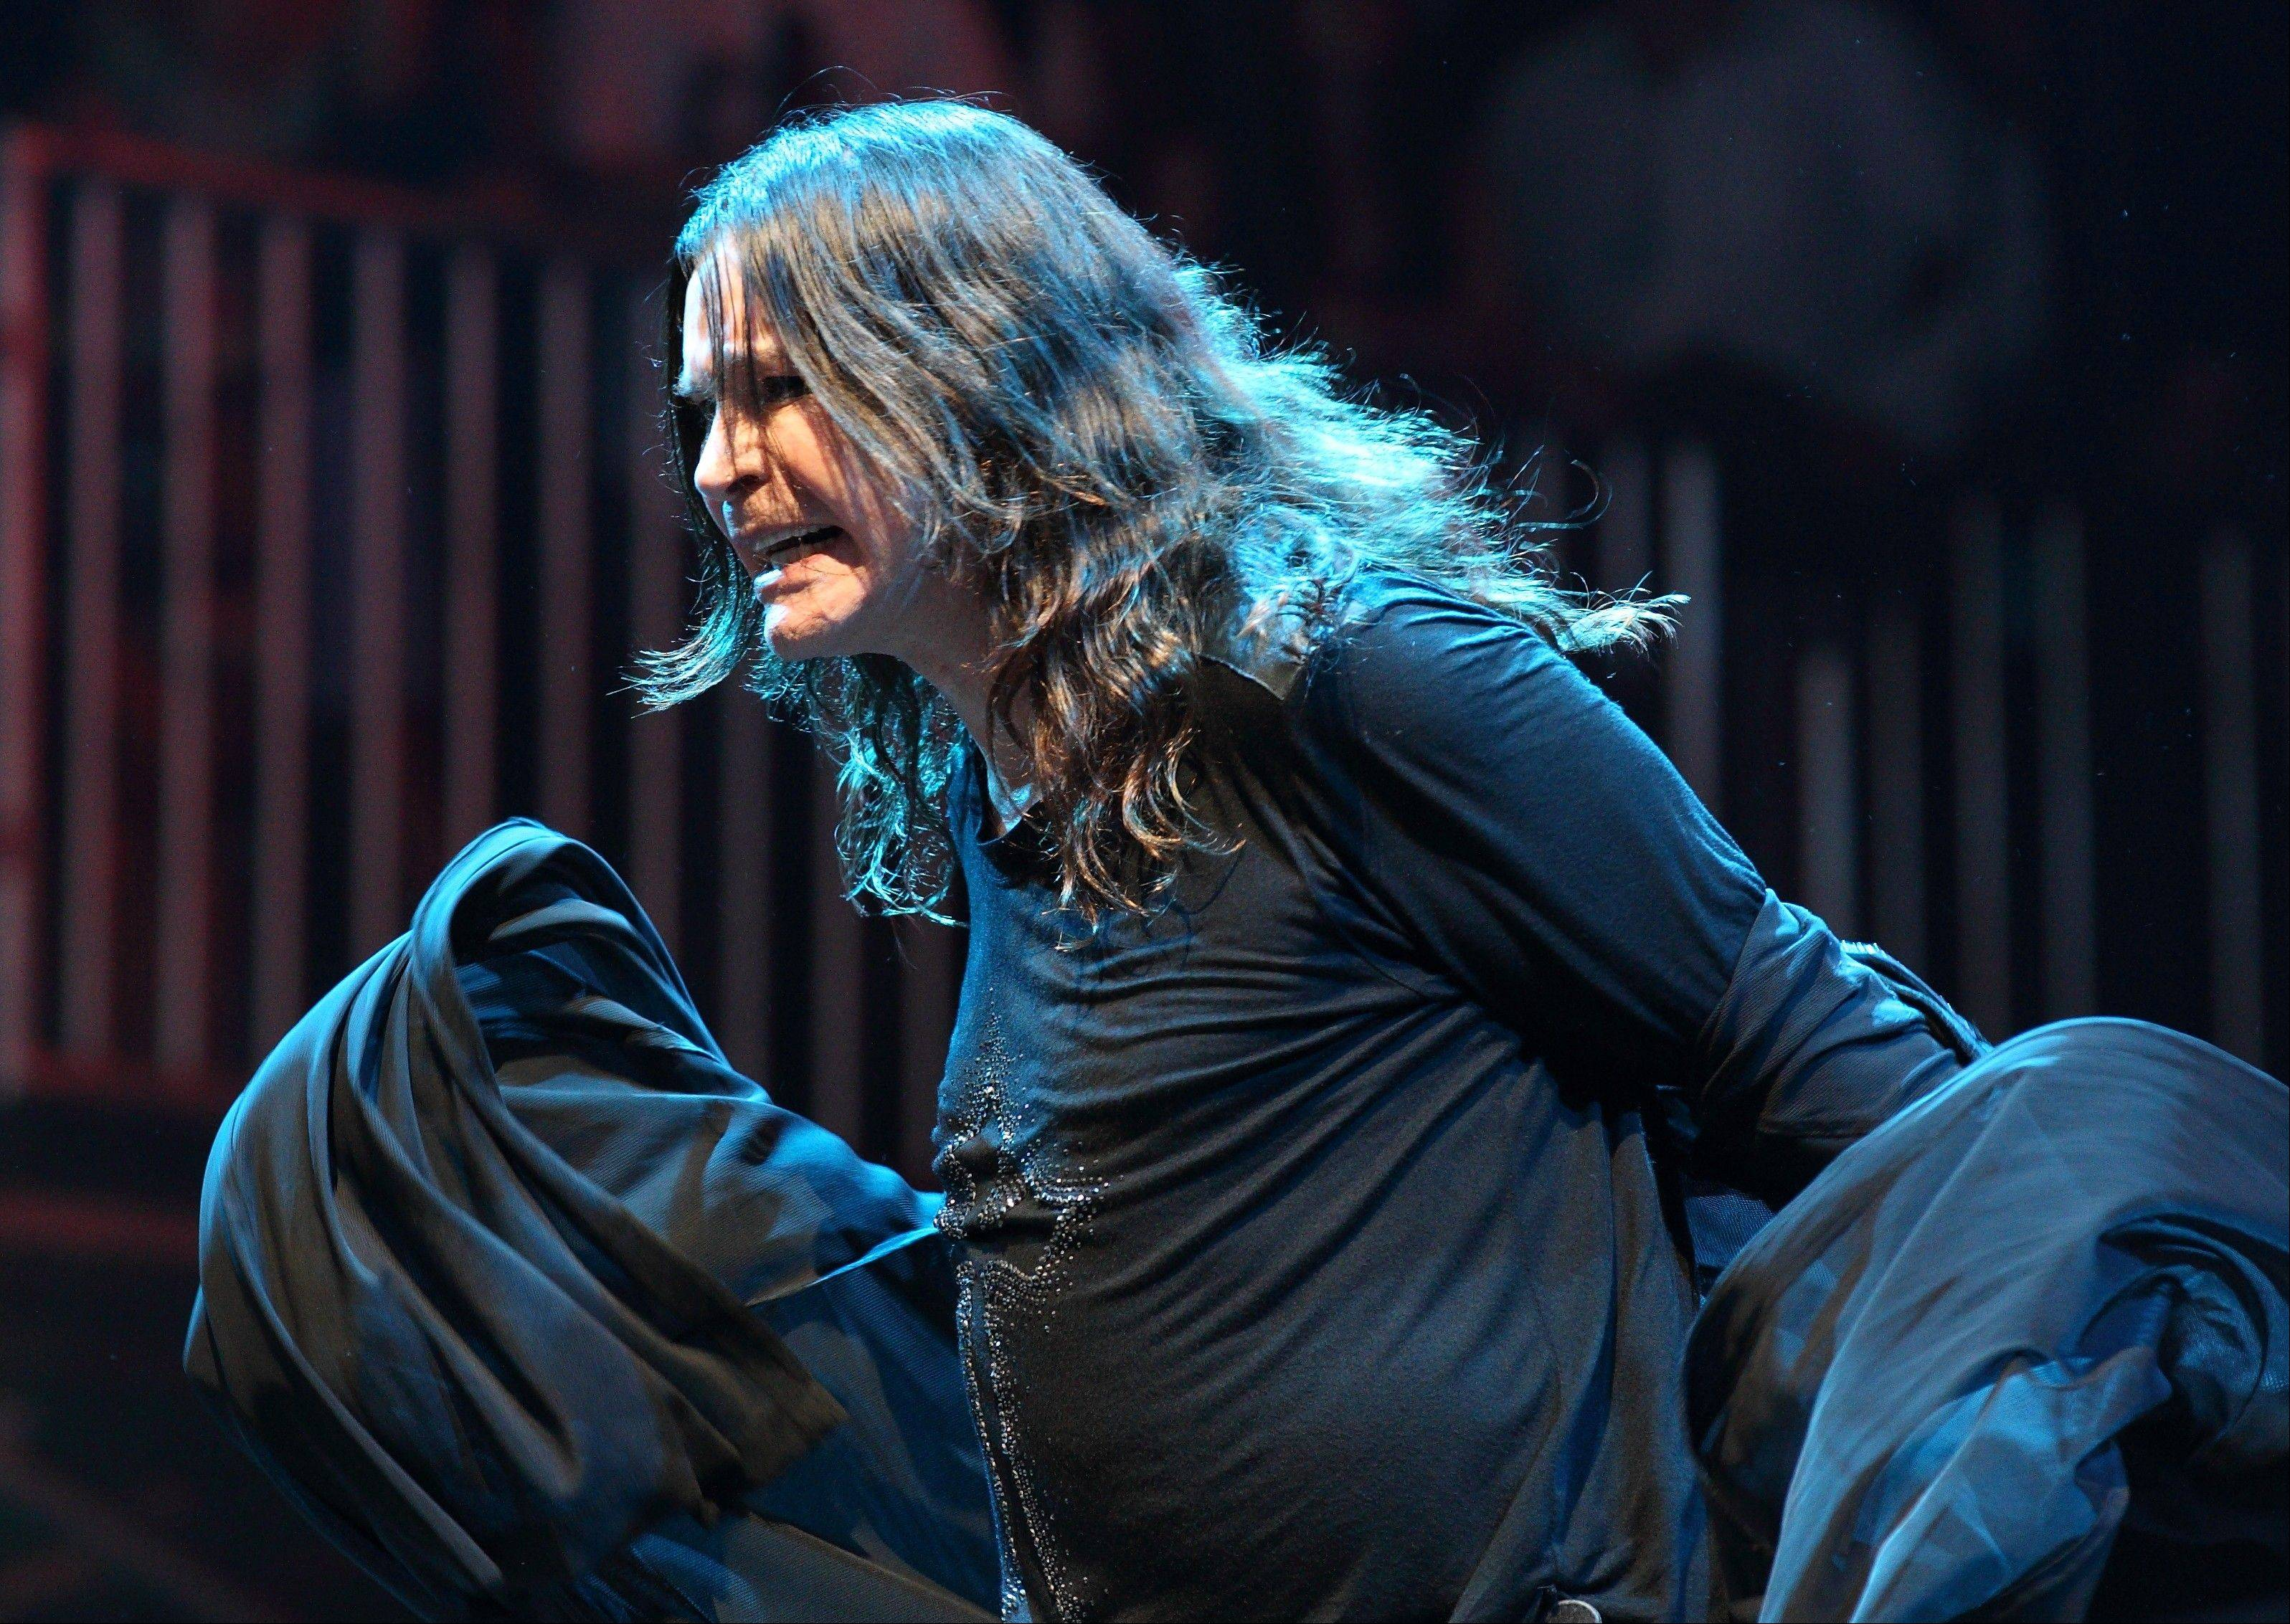 Ozzy Osbourne of Black Sabbath performs aLollapalooza on opening day in Chicago's Grant Park on Friday, Aug. 3, 2012.